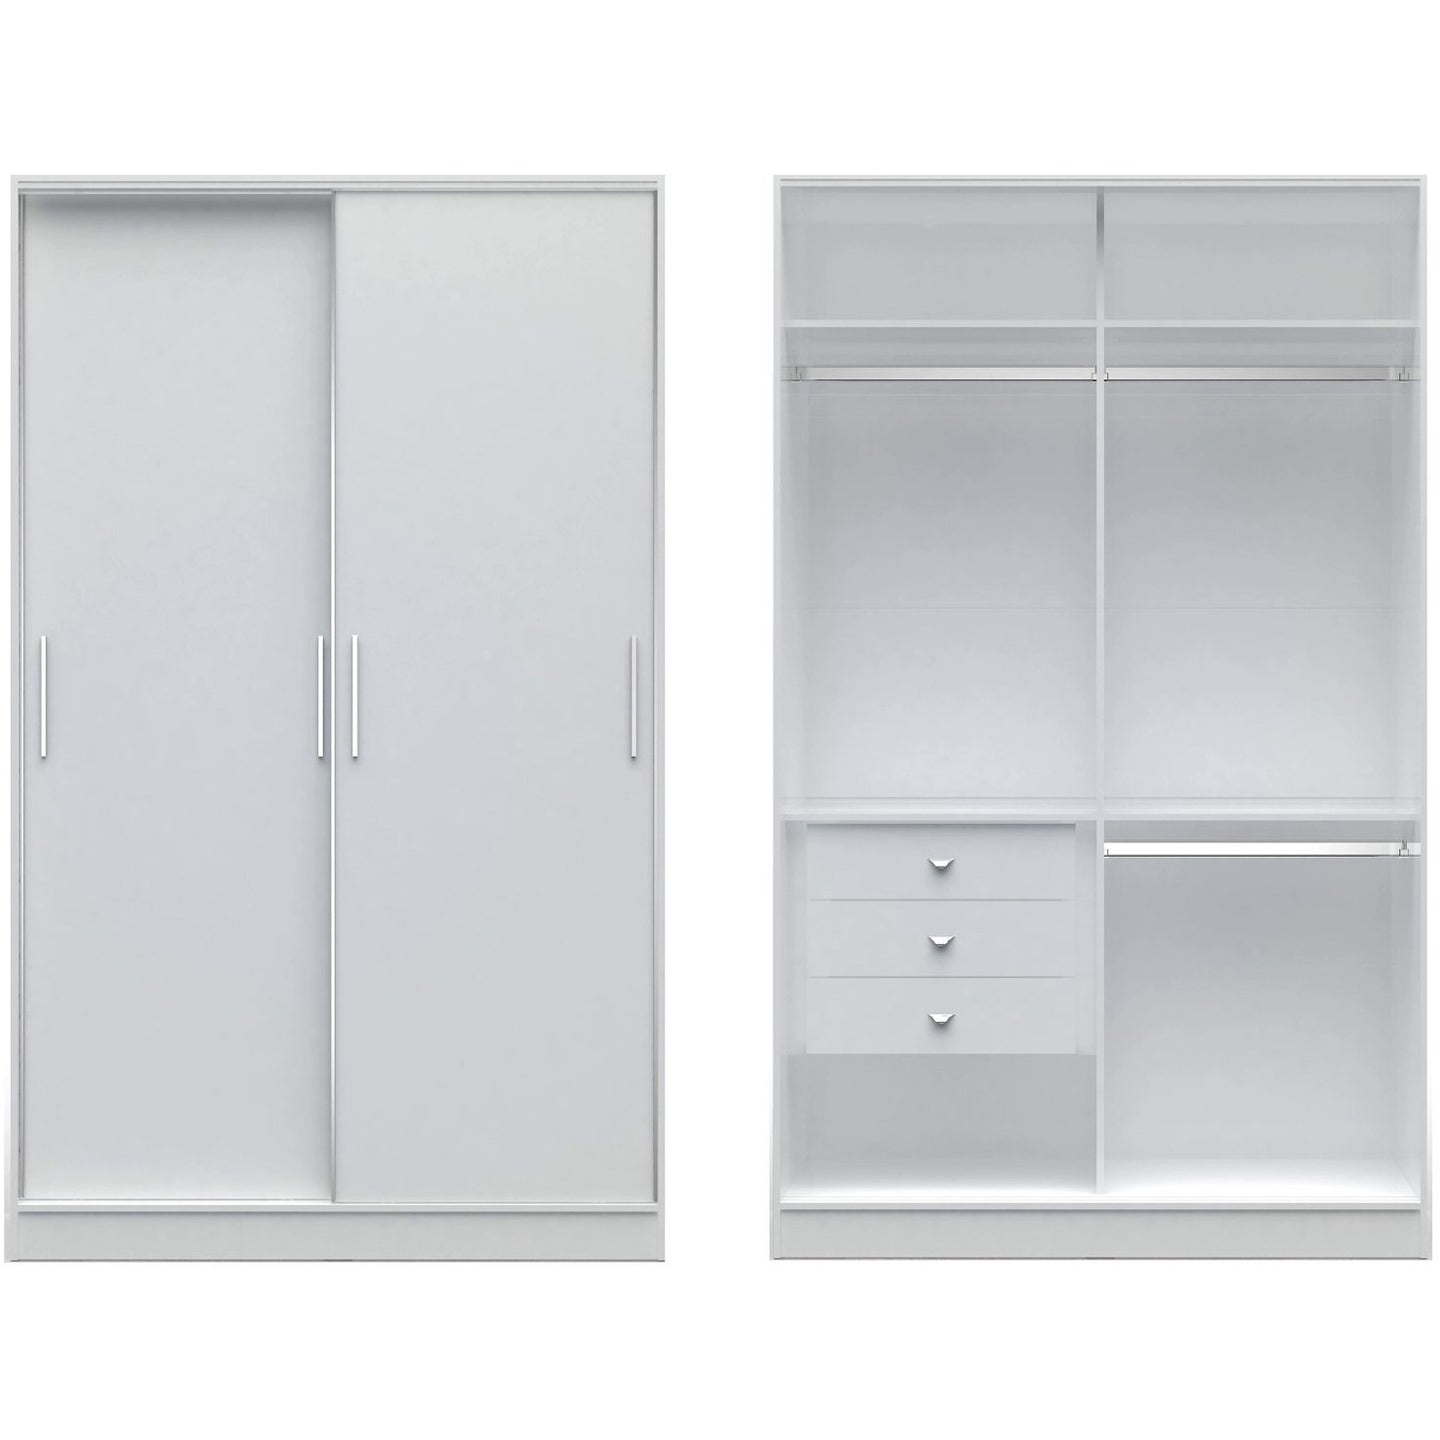 Manhattan Comfort Chelsea 1.0 - 54.33 inch Wide Double Basic Wardrobe with 3 Drawers and 2 Sliding Doors in White-Minimal & Modern